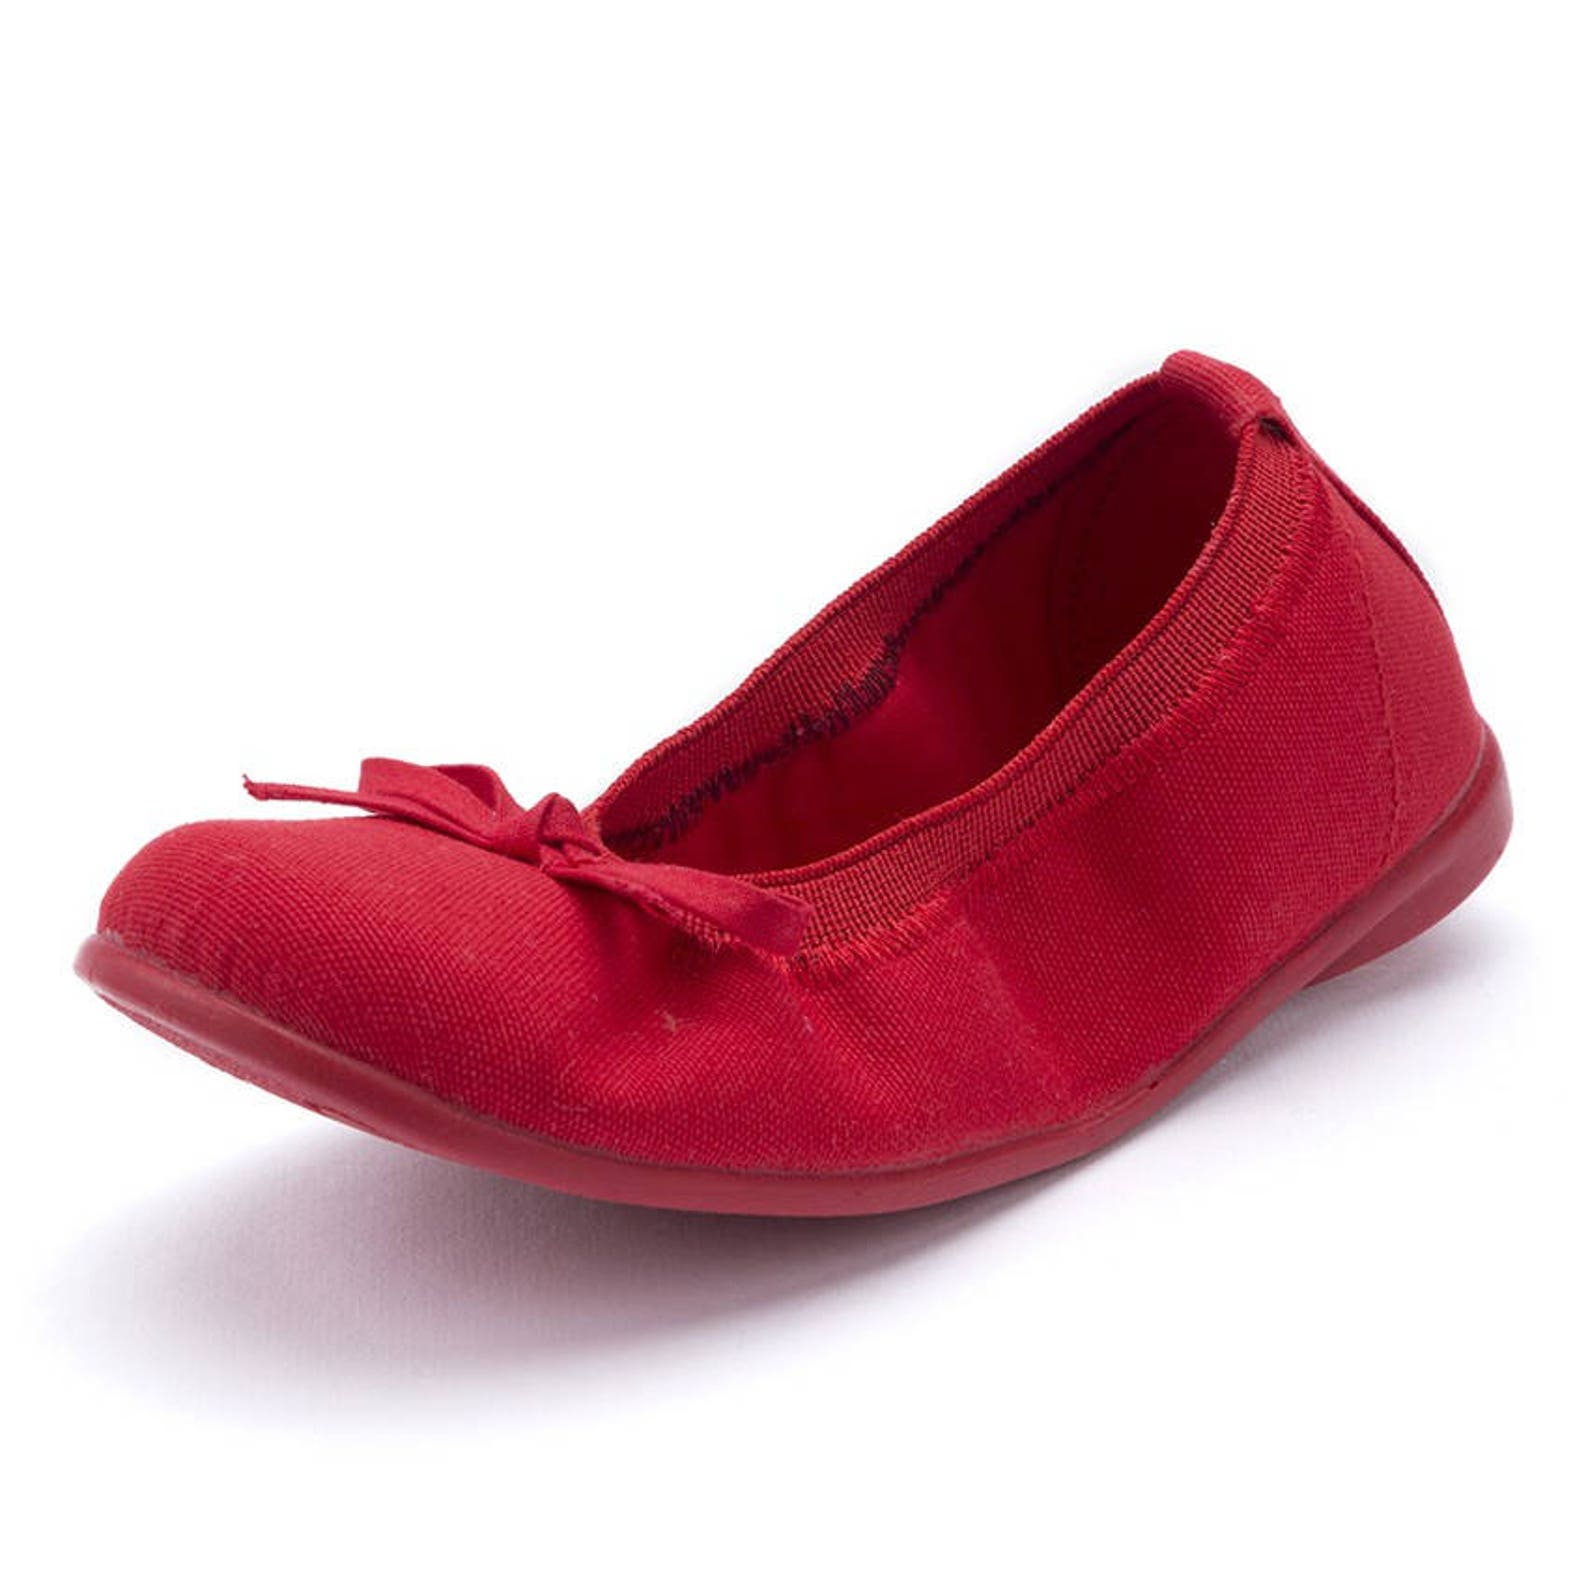 red ballet flats with bow, girl shoes, toddler shoes, walker shoes, walker shoes for babies, girls ballet flats, baby shoes